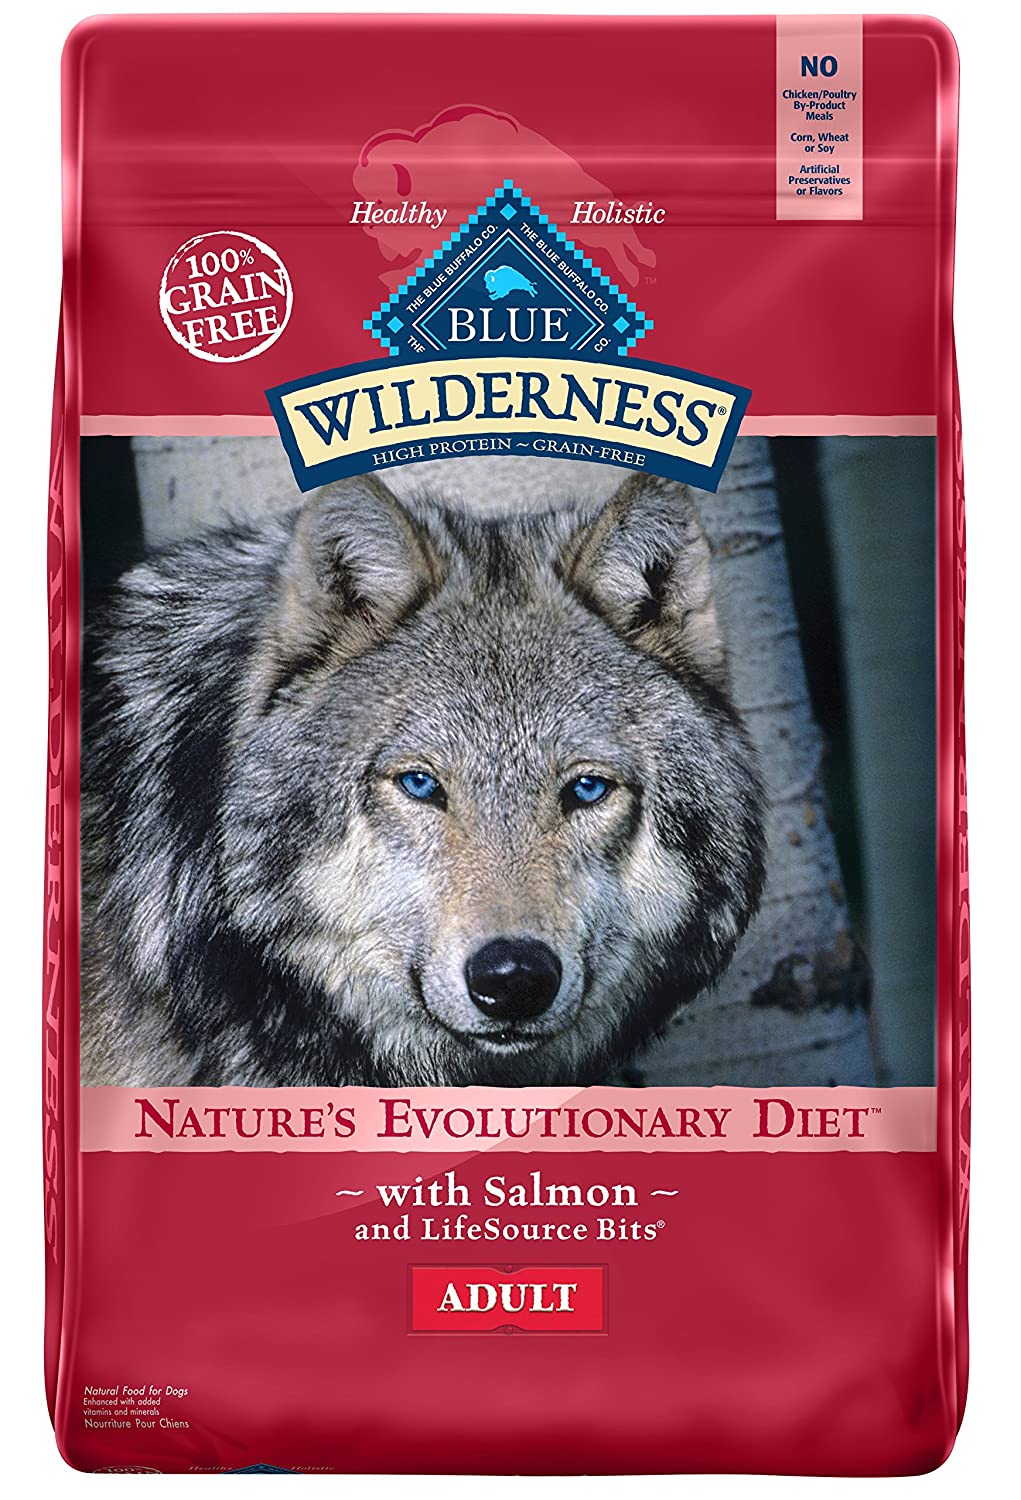 Blue Wilderness Buffalo High Protein Dry Dog Food